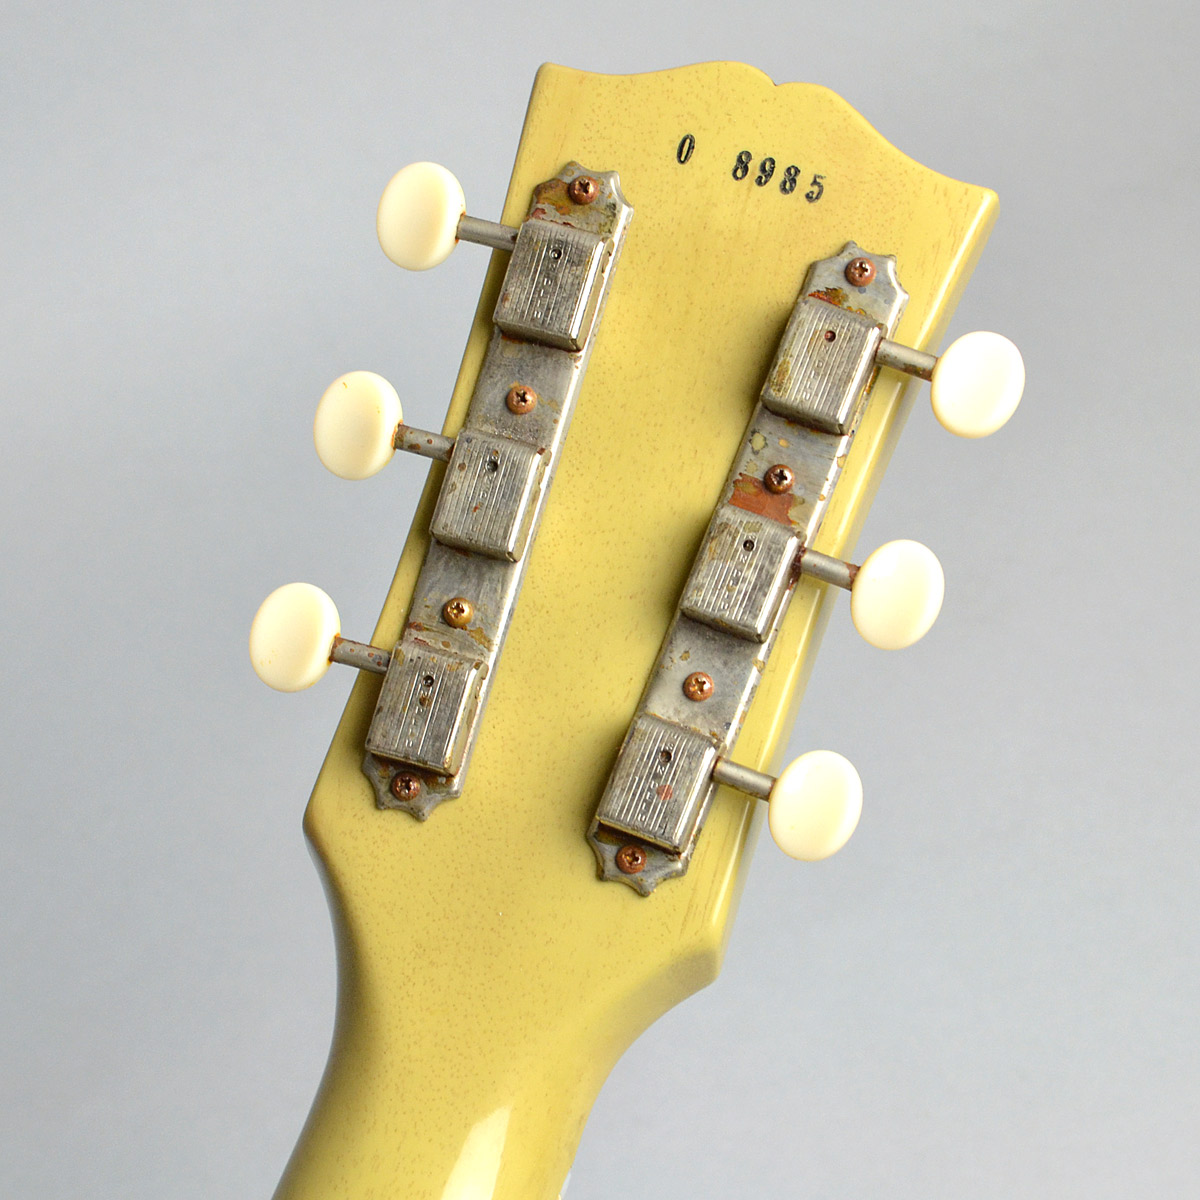 1960 Les Paul Special Double Cutaway VOSのヘッド裏-アップ画像